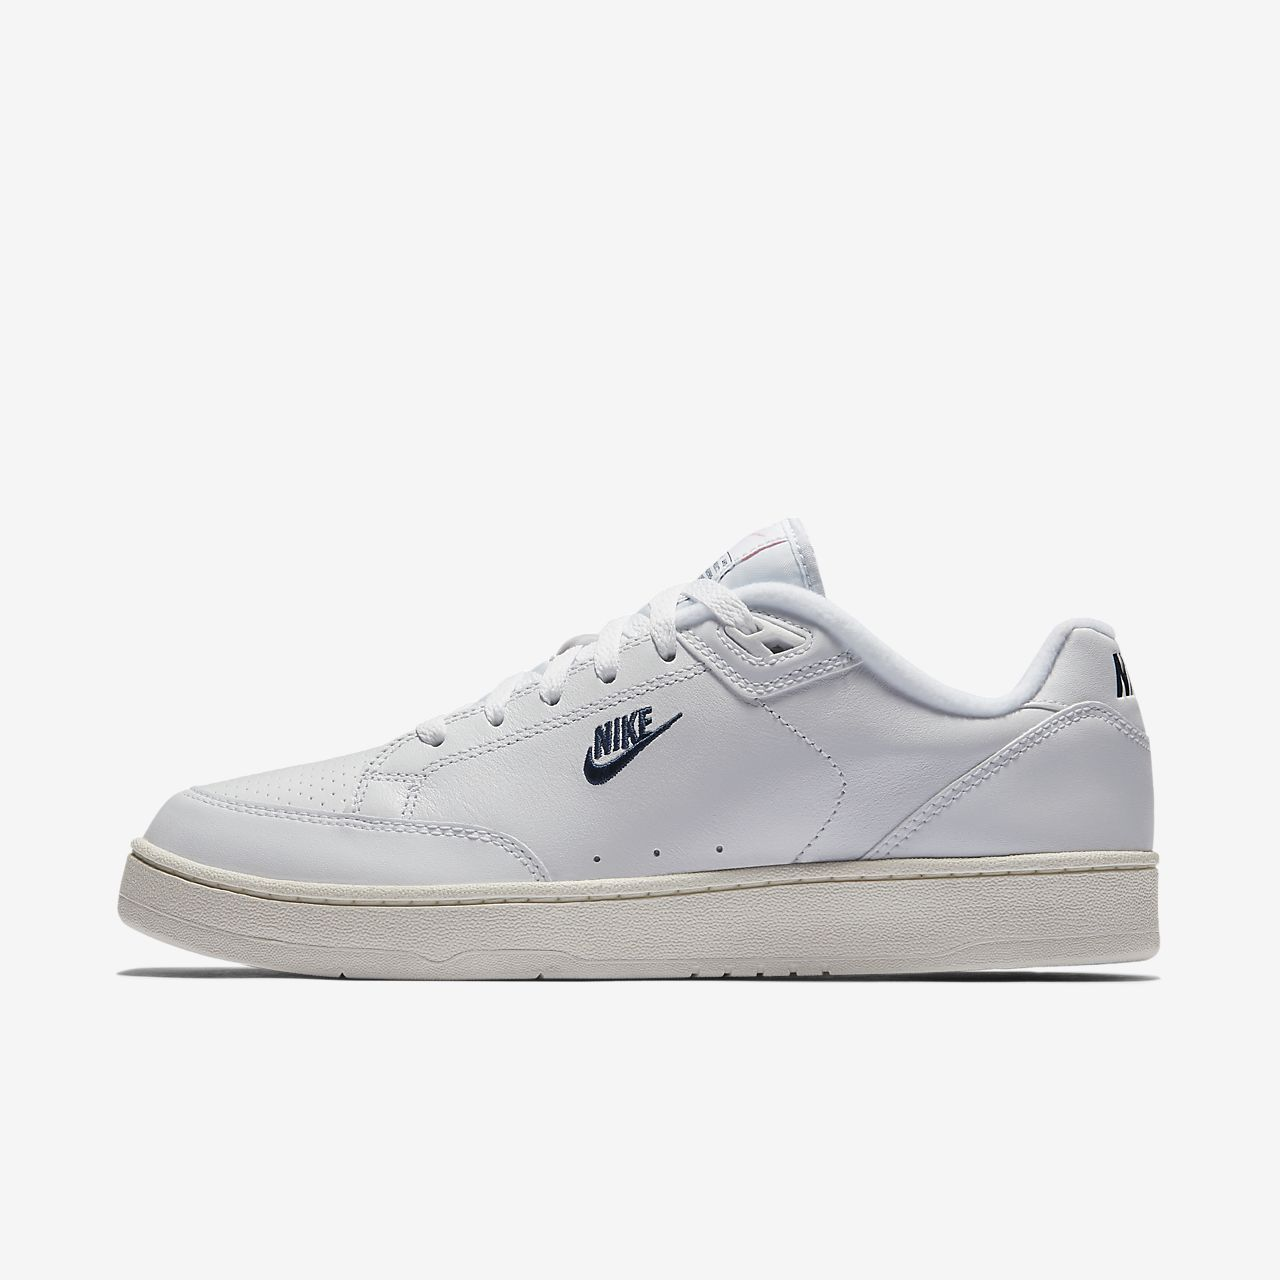 Chaussure Nike Grandstand II pour Homme